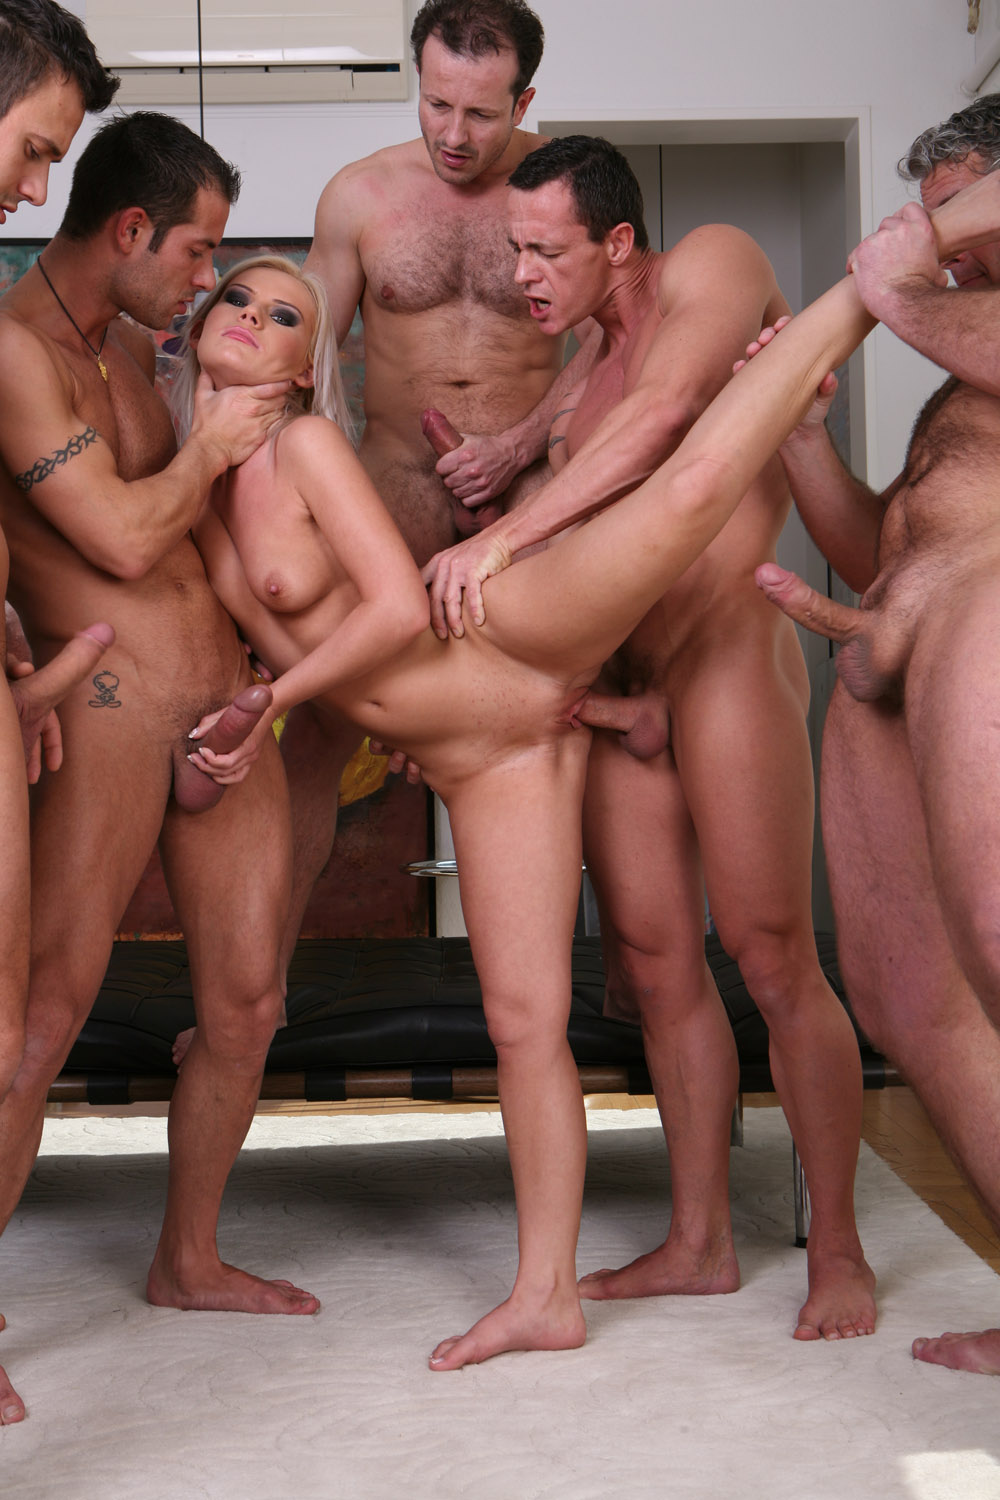 Erotic female gang bang pictures erotic movie